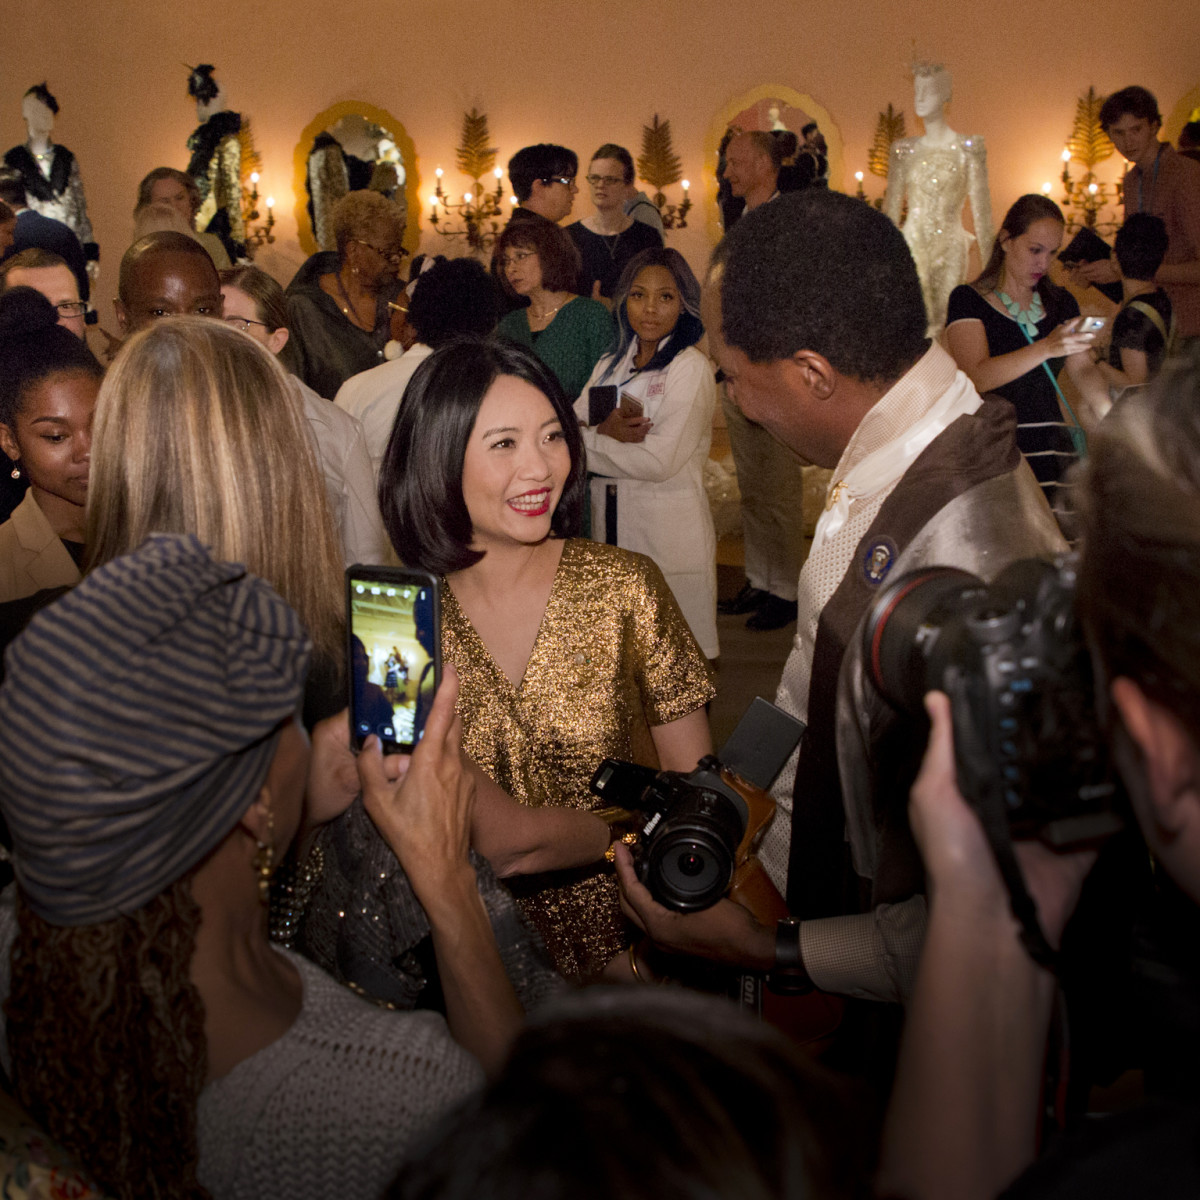 Couturier Guo Pei surrounded by fans at the opening reception of her first U.S. solo exhibition at SCAD FASH Museum of Fashion + Film. Photo: Courtesy of SCAD